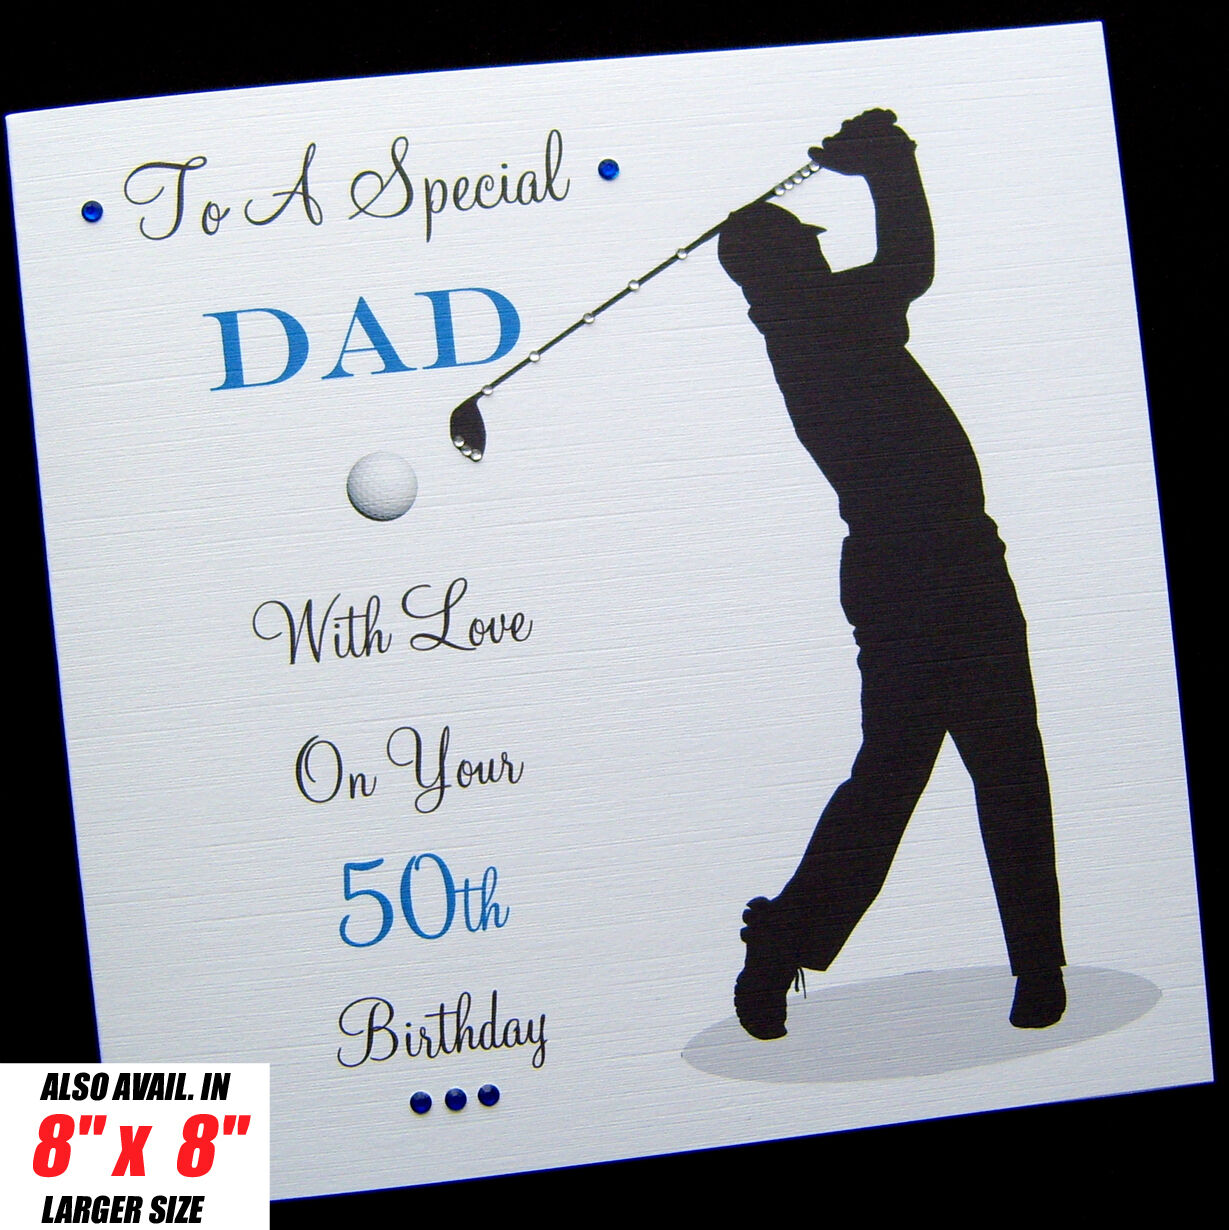 Personalised GOLF Birthday Card Dad Brother Son Husband Uncle In Law 1 Of 1FREE Shipping